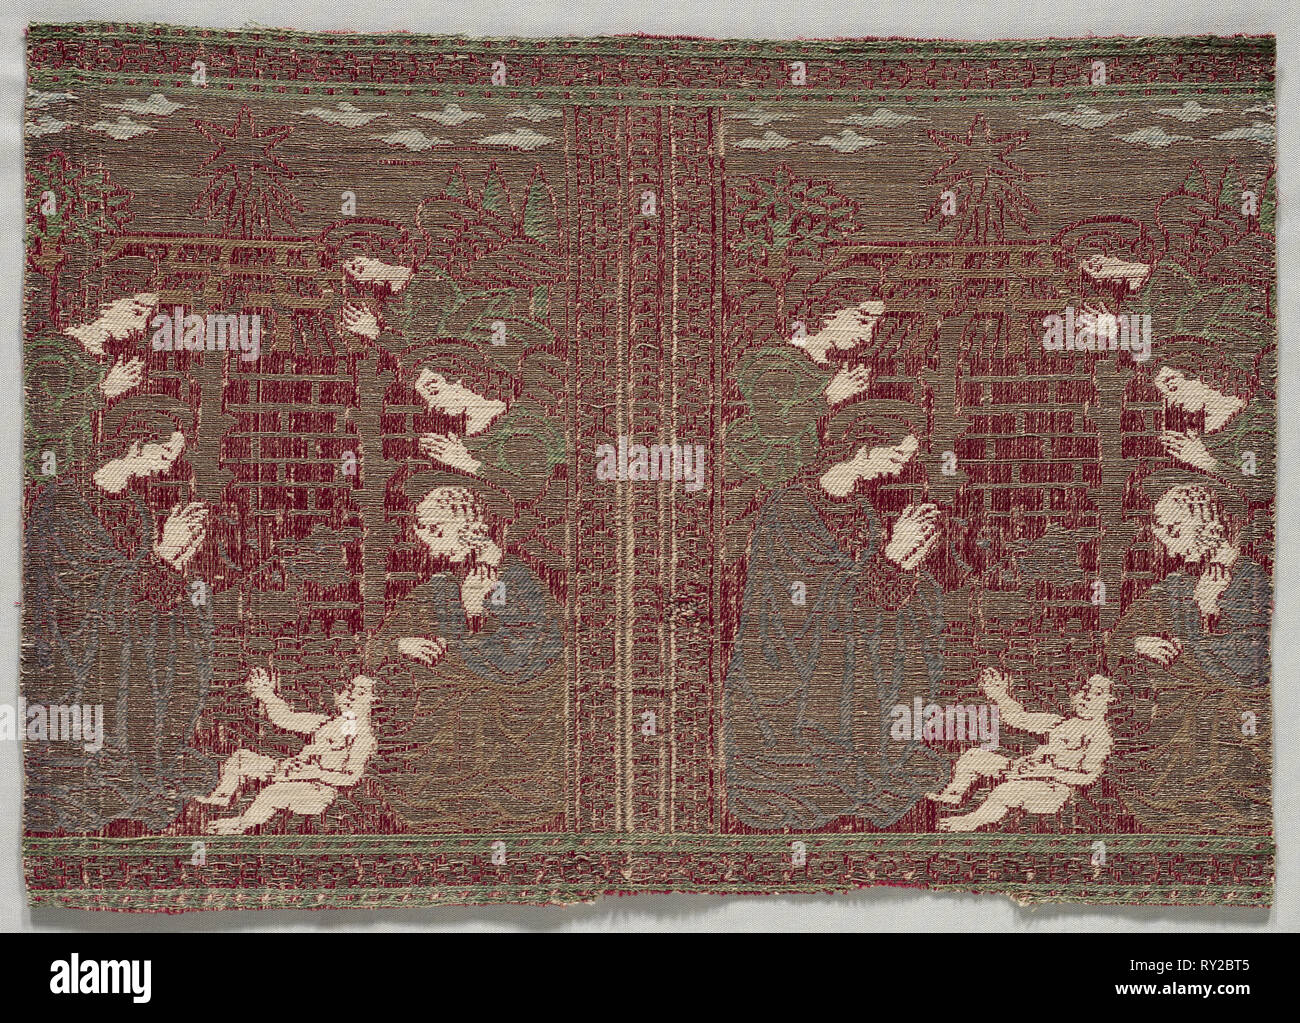 Woven Strip for Ecclesiastical Parameters, early 1500s. Italy, Florence,  early 16th century